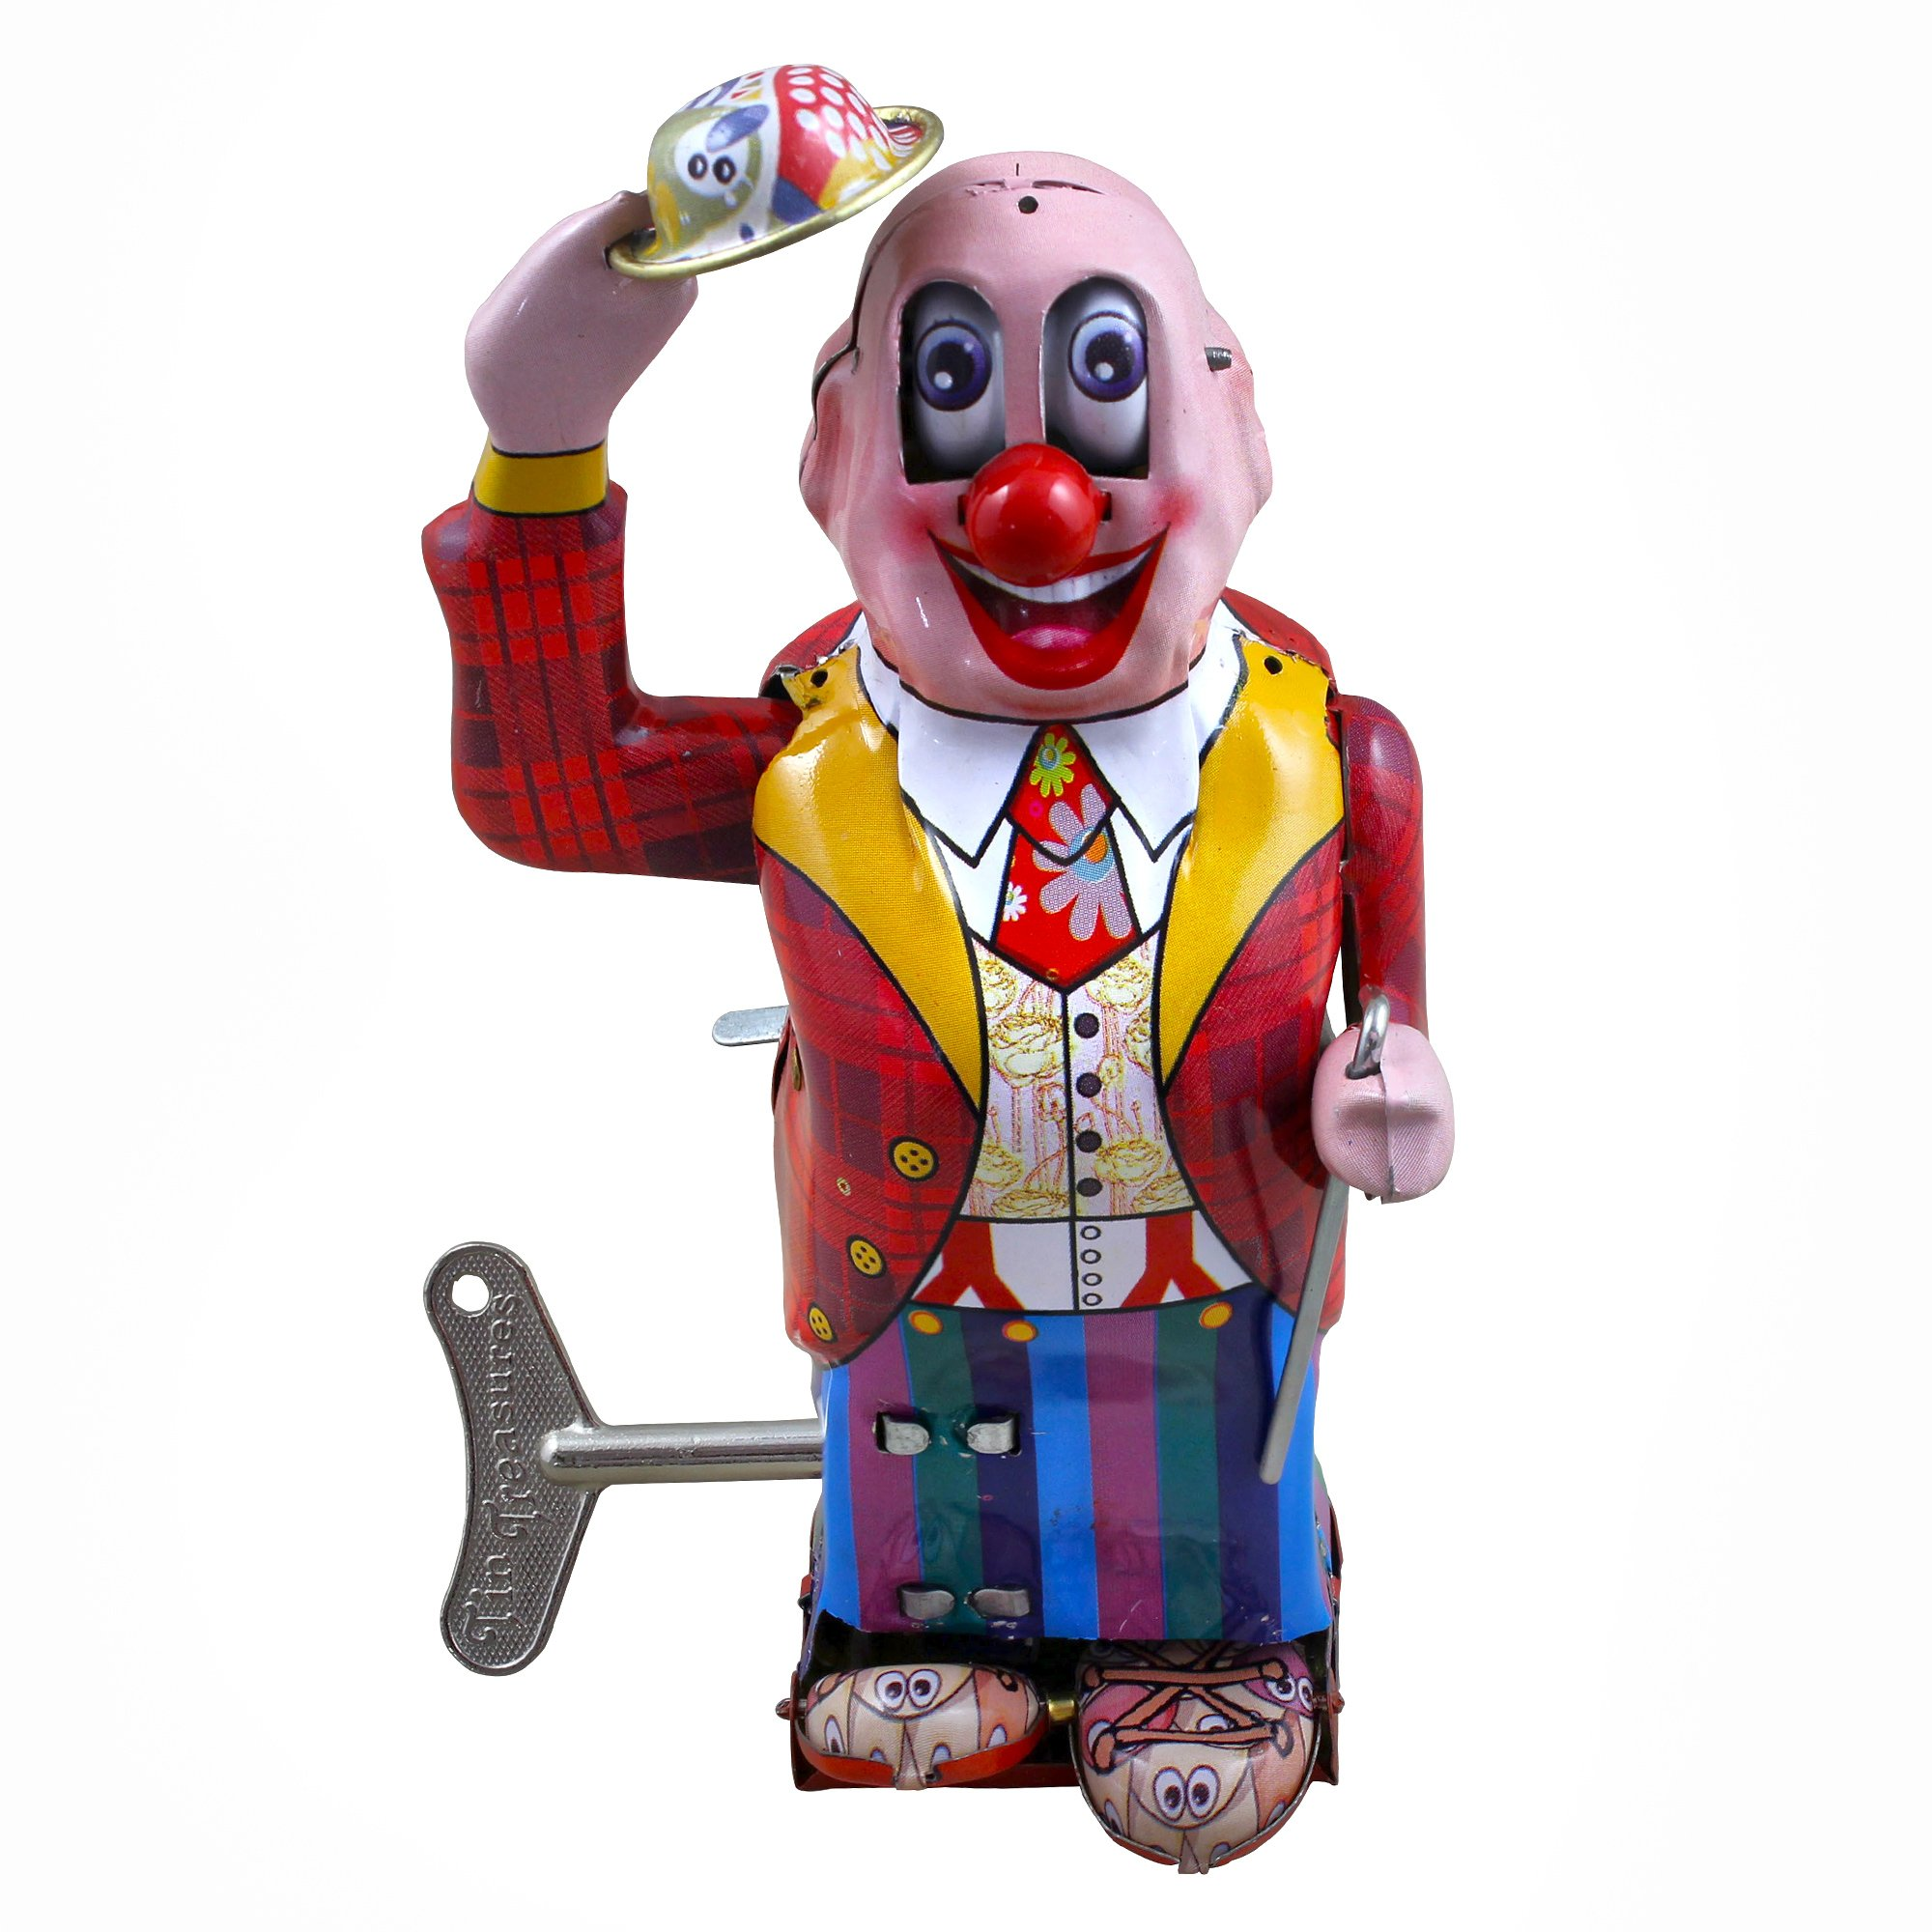 RoyaltyRoute Vintage Wind-up Tin Toys Collectibles Dandy Clown Joker